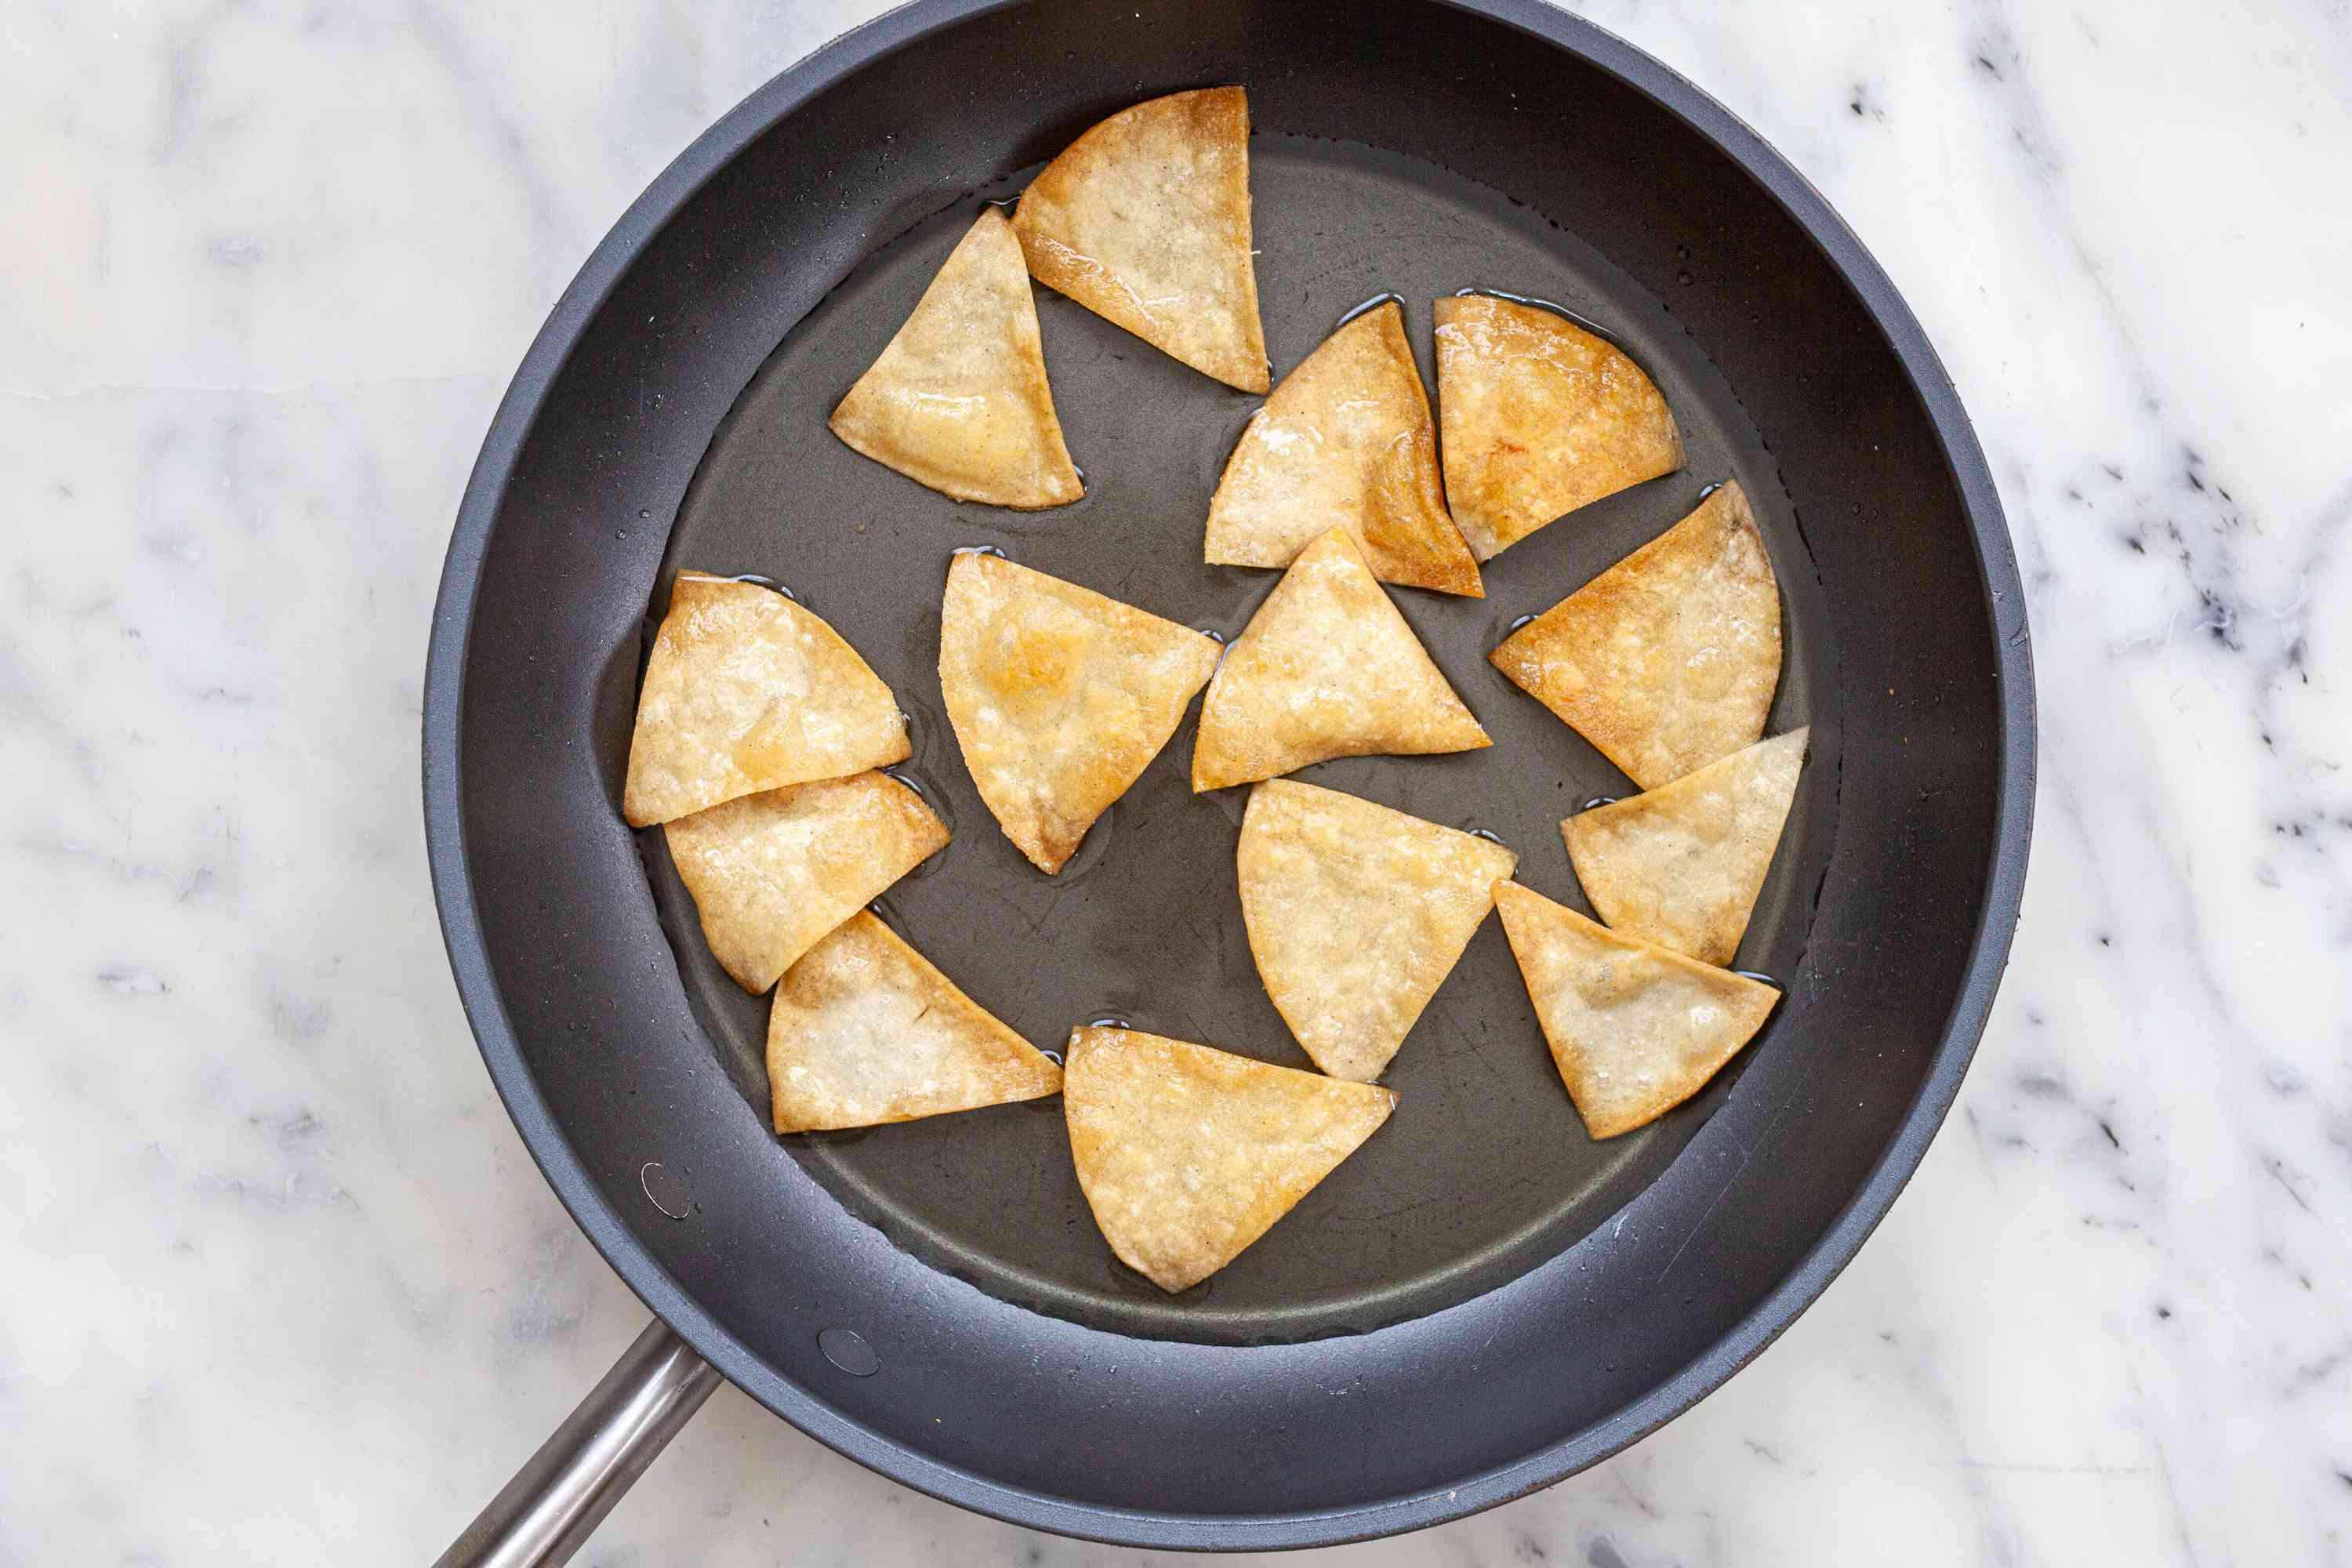 Tortilla chips frying in a skillet to make Chilaquiles.